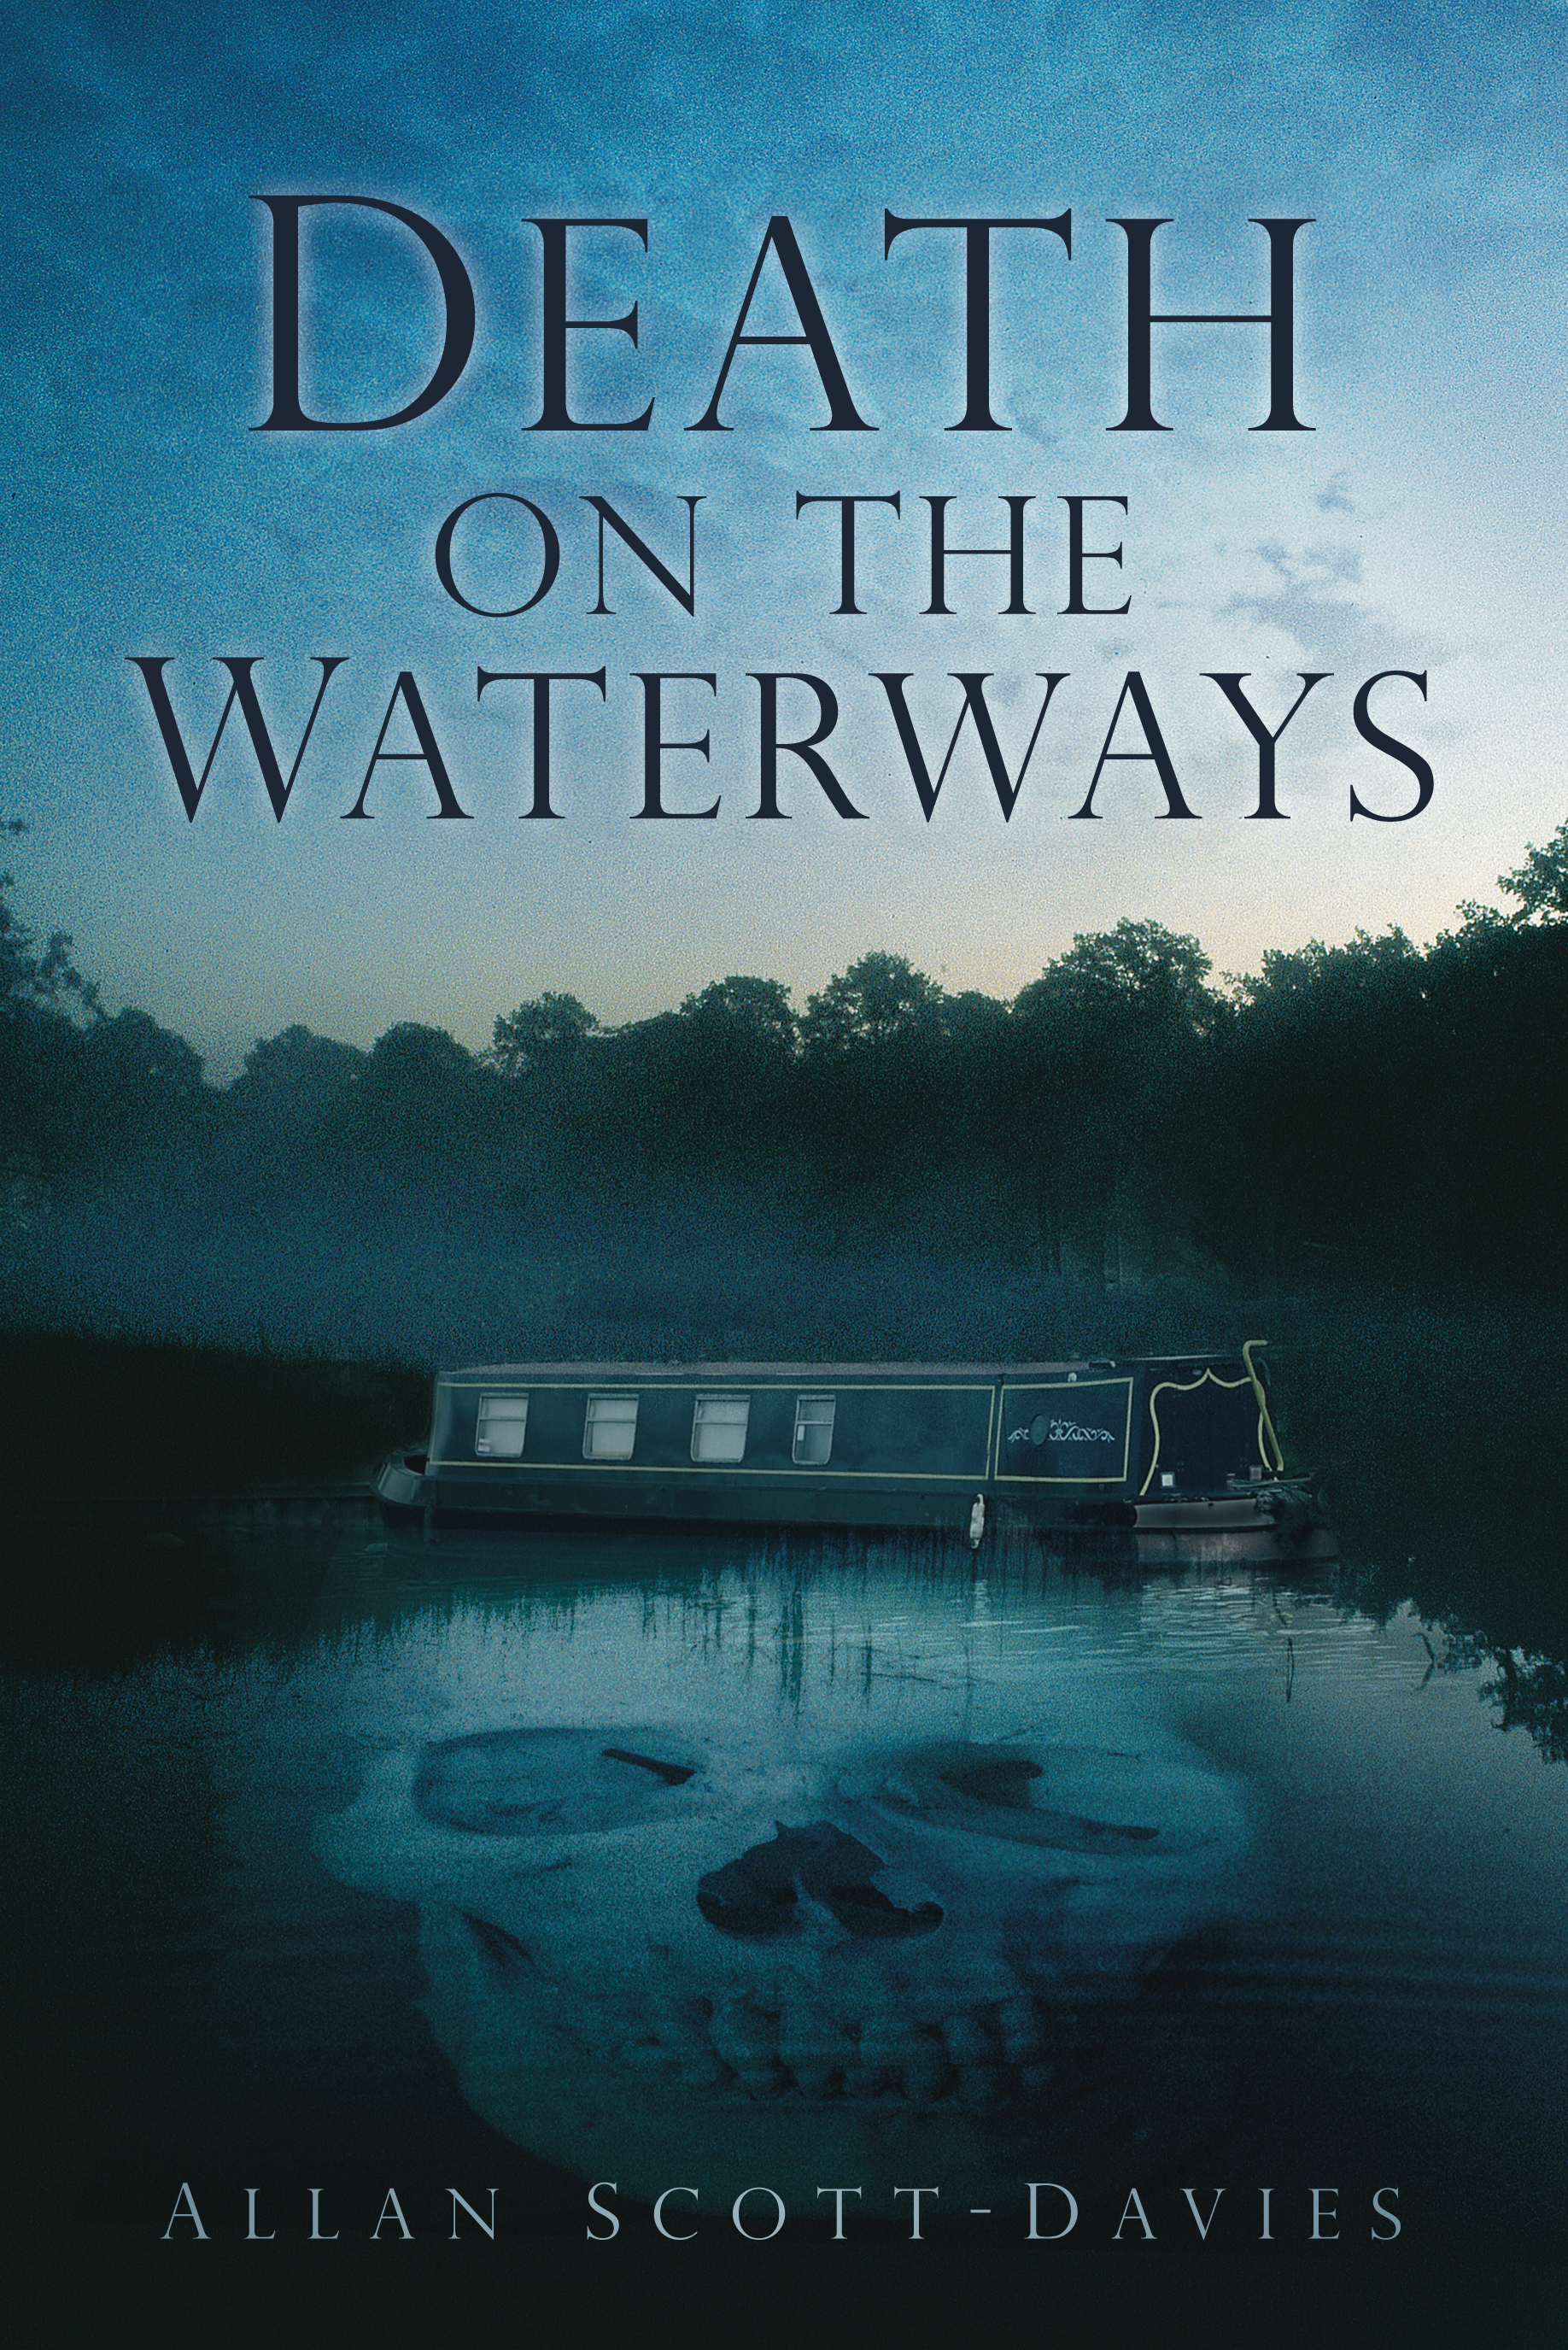 Death on the Waterways